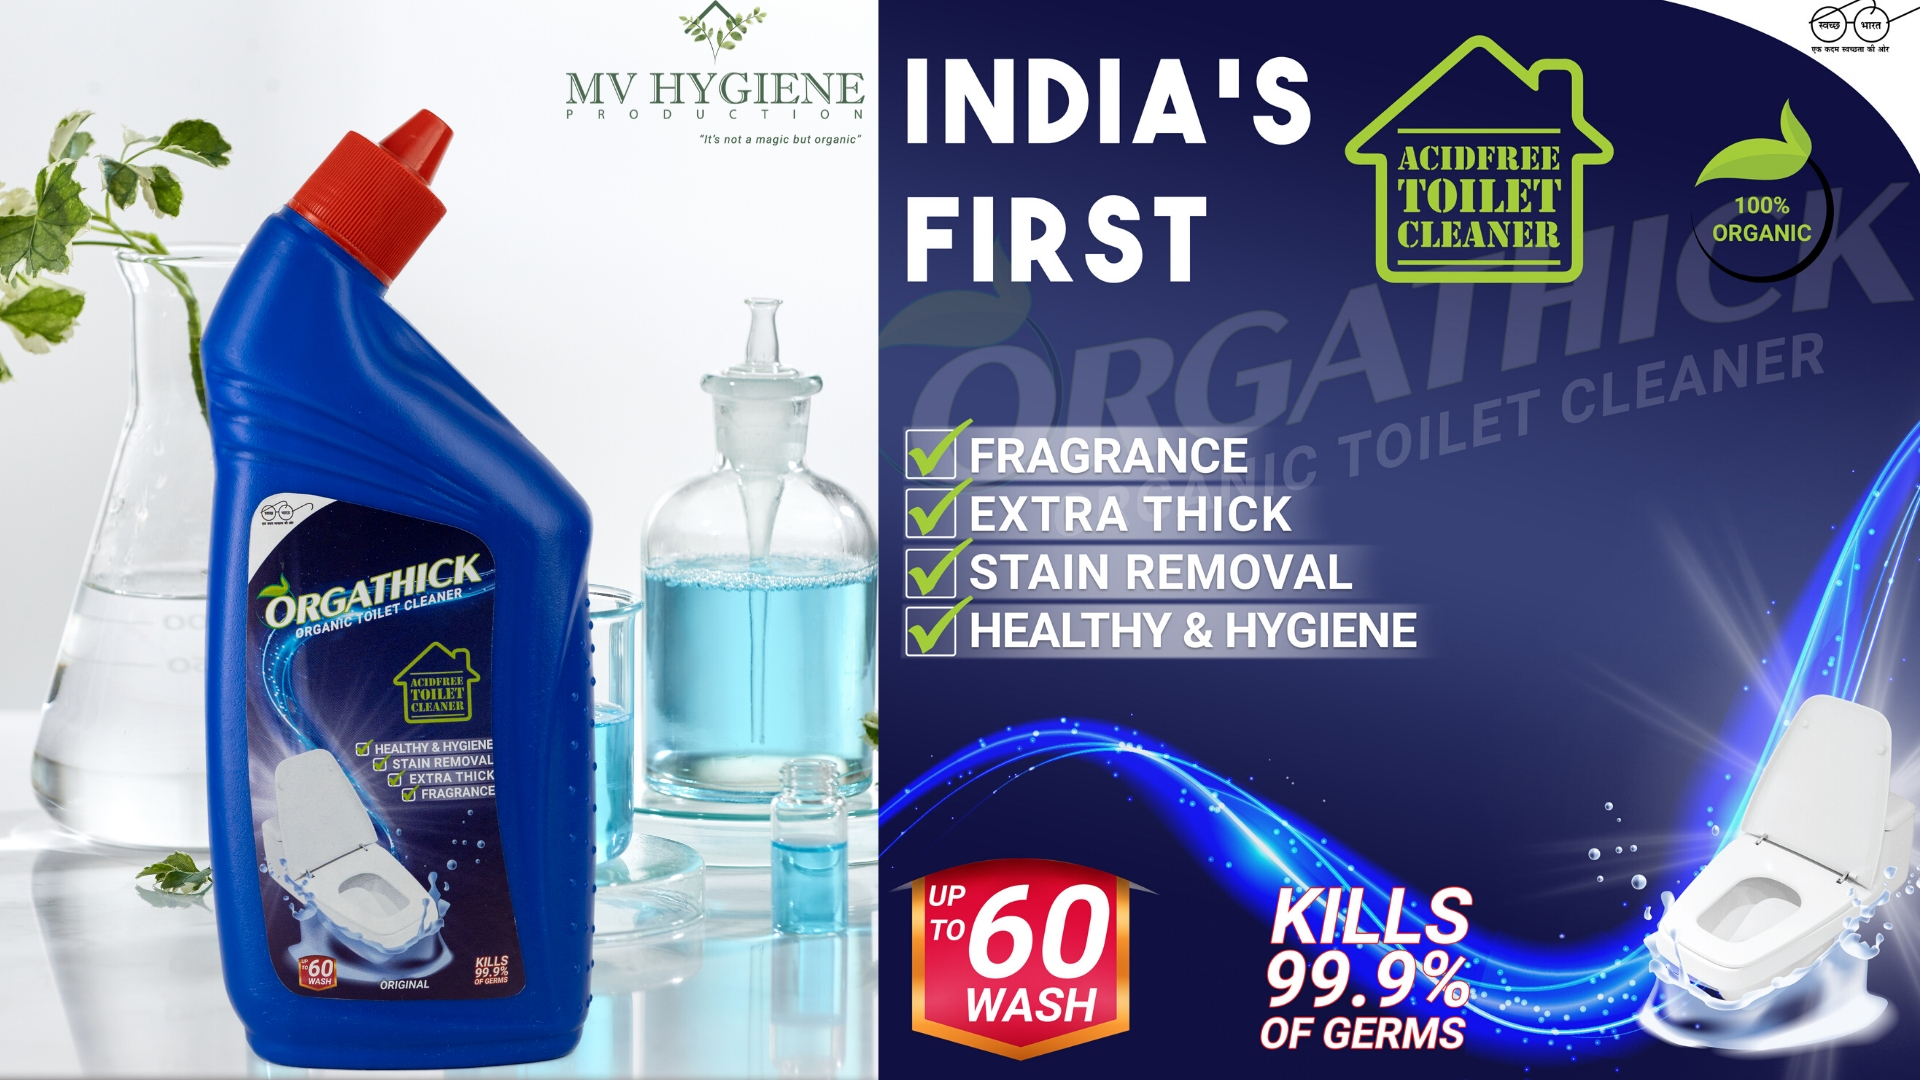 Orgathick Organic Toilet Cleaner